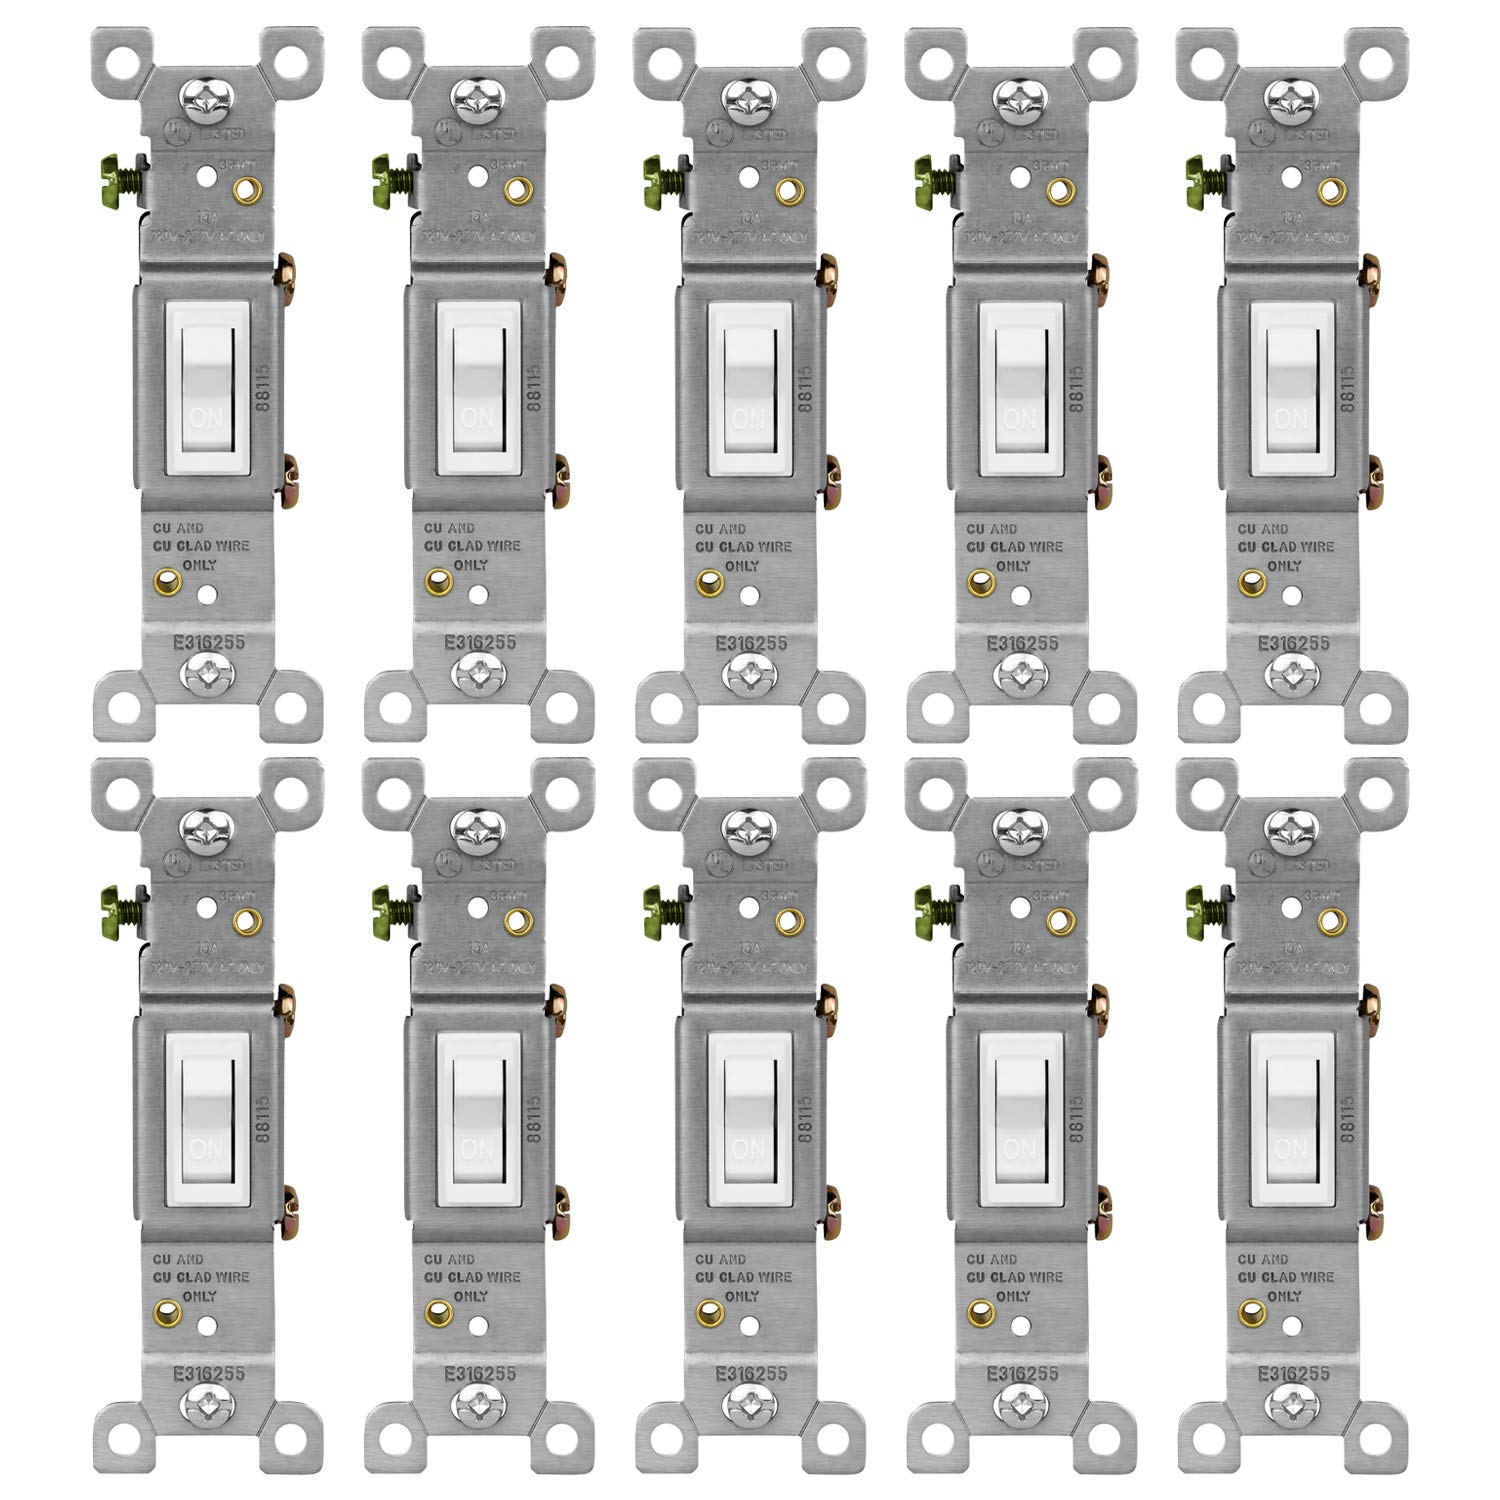 ENERLITES Toggle Light Switch, Single Pole, Steel Frame, Residential Grade, Ground Screw, 88115-W-10PCS, White (10 Pack)